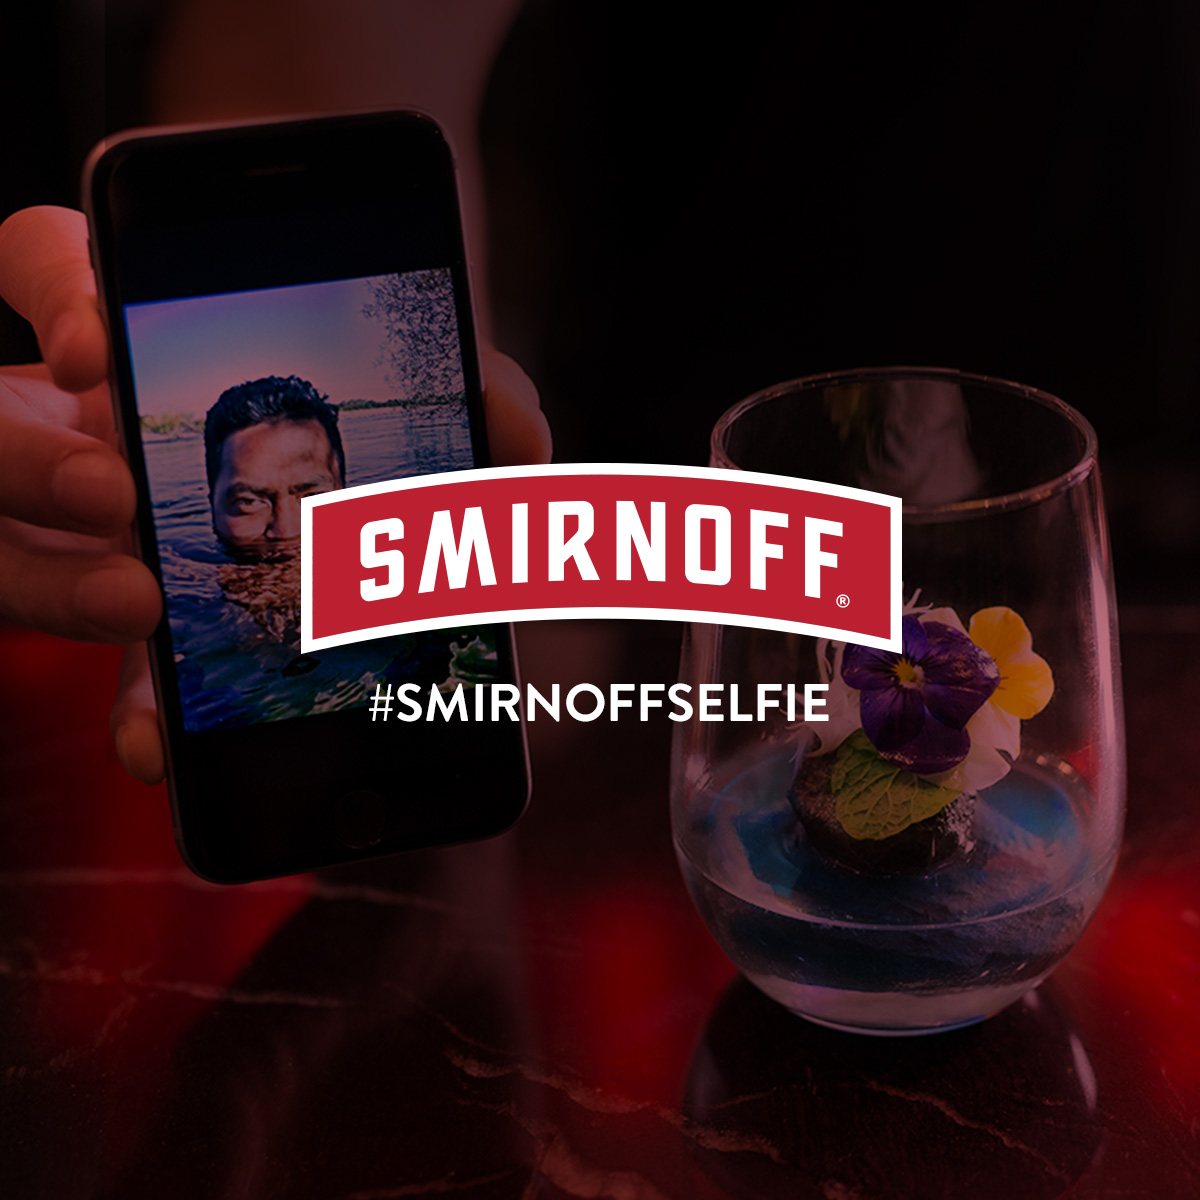 Smirnoff Selfie #purepotential   Using Facebook Live API, we'd reveal a selection of selfies to our mixologist live on Facebook and have him create a completely bespoke cocktail inspired by each photo.